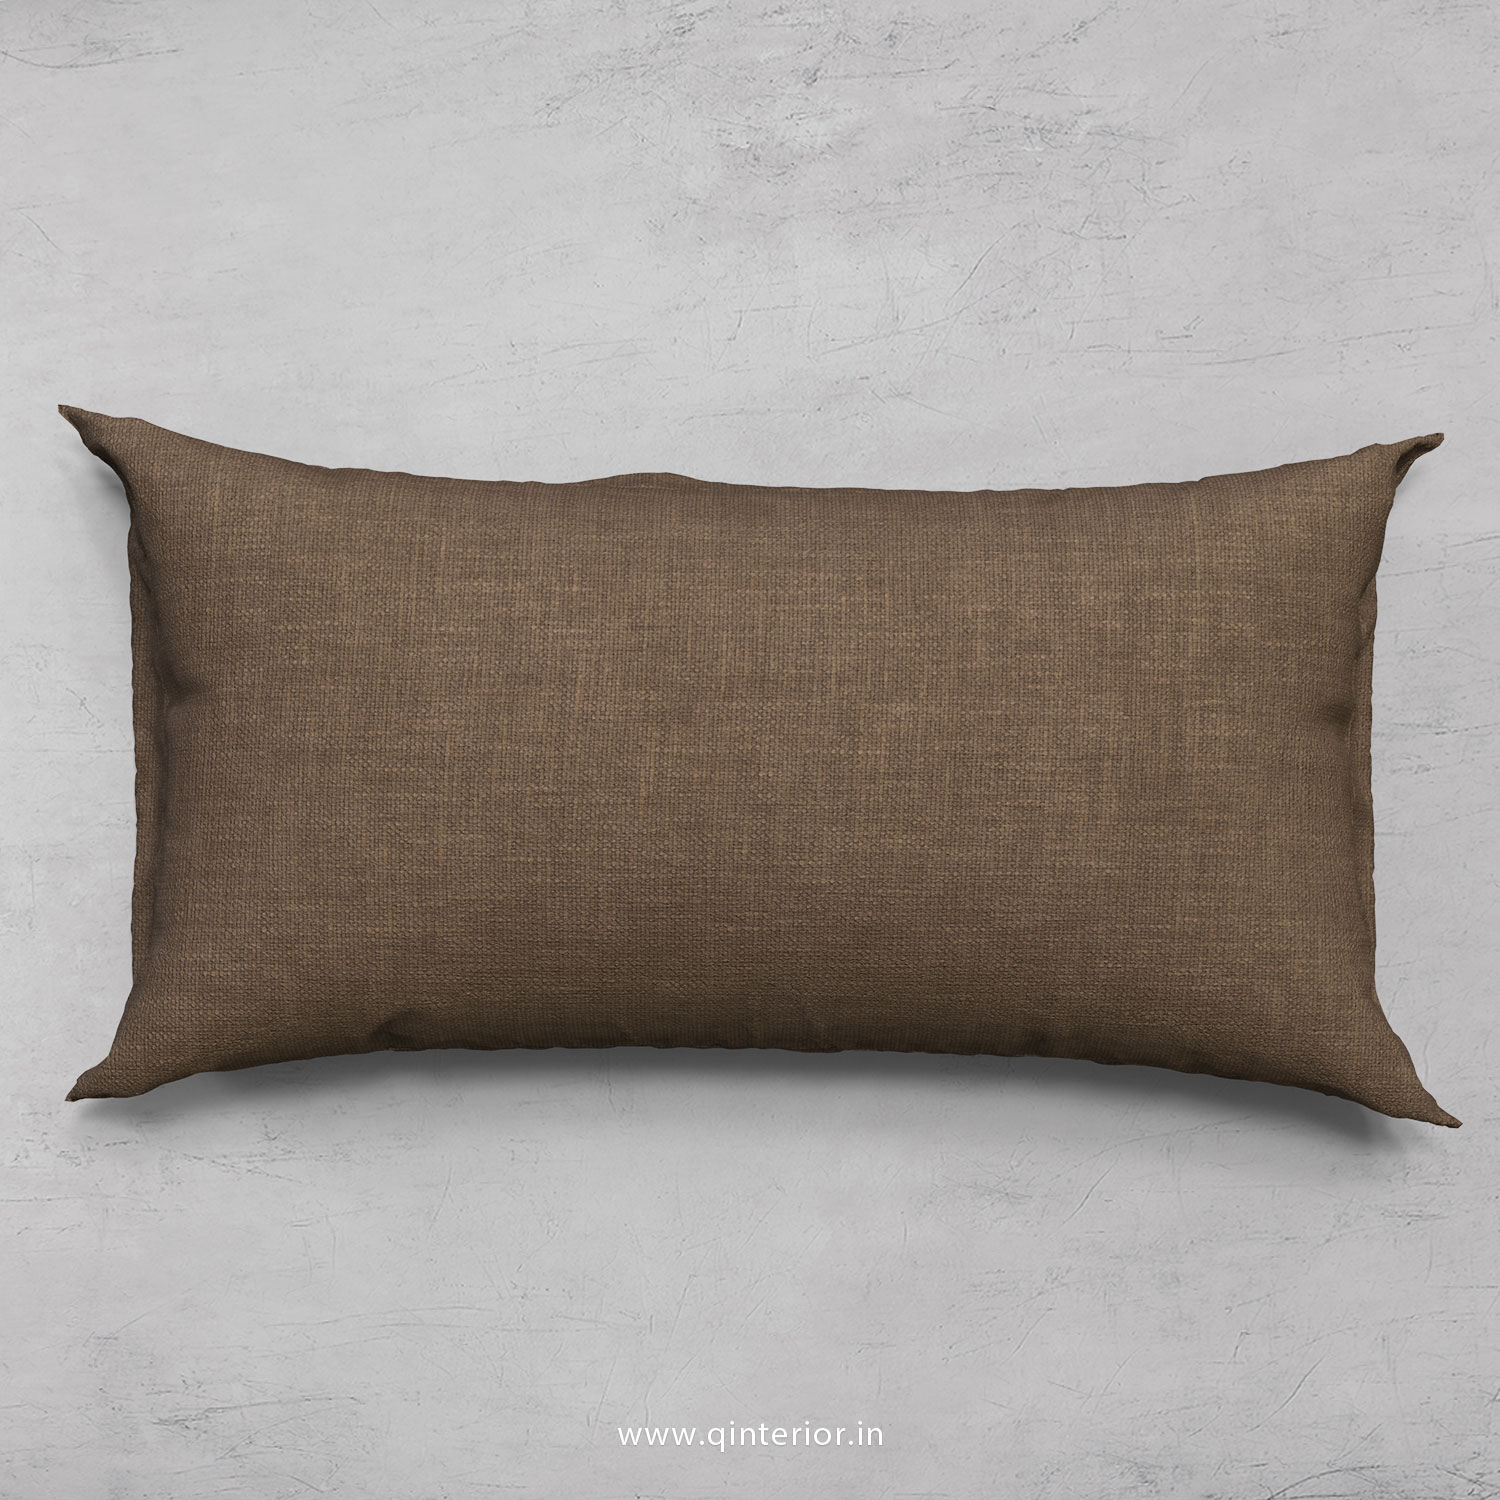 Cushion With Cushion Cover in Cotton Plain- CUS002 CP08